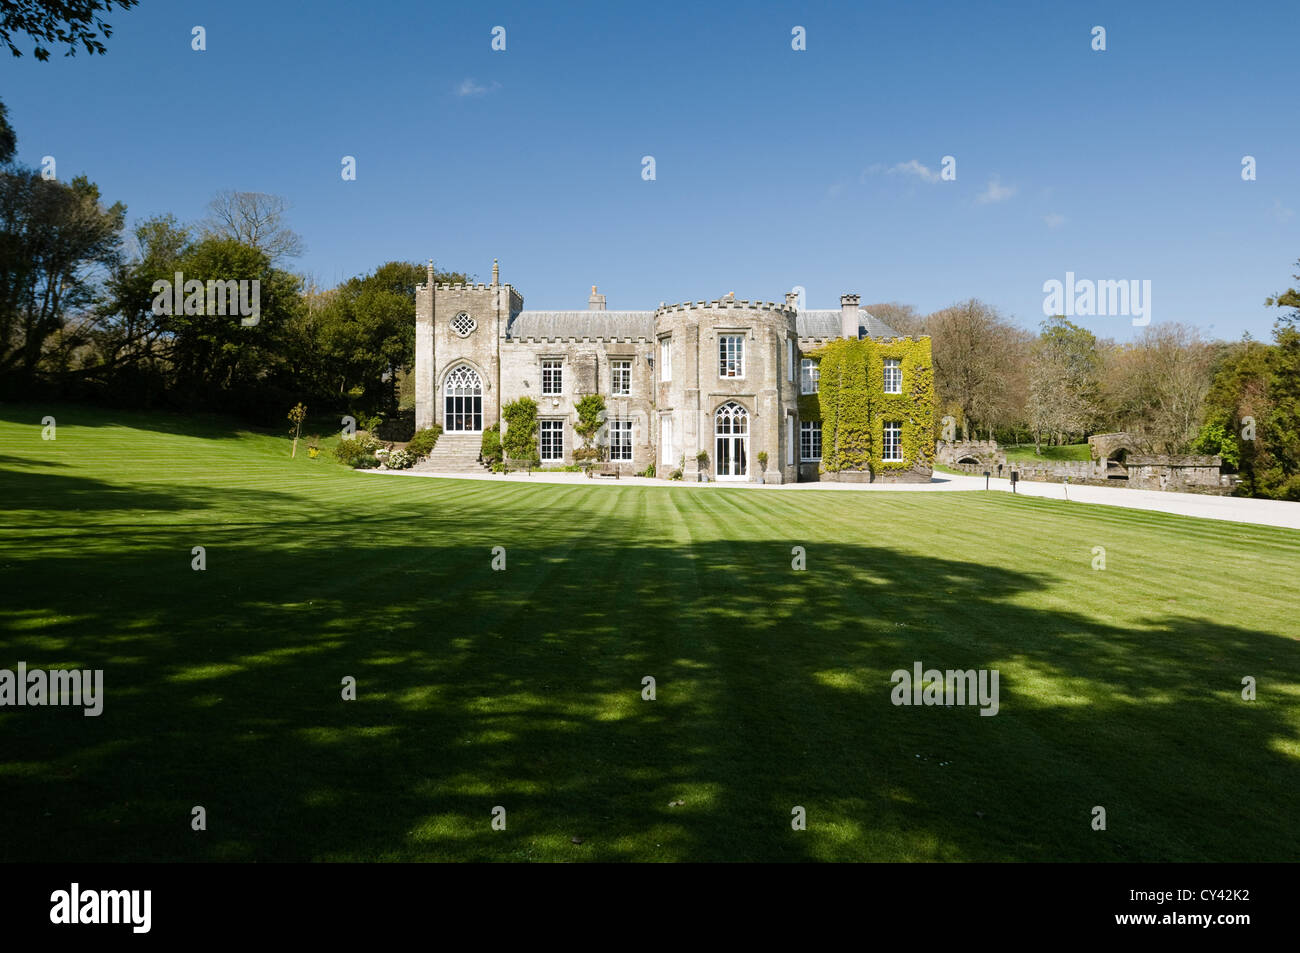 Exterior facade of Prideaux Place, an Elizabethan manor in north Cornwall - Stock Image